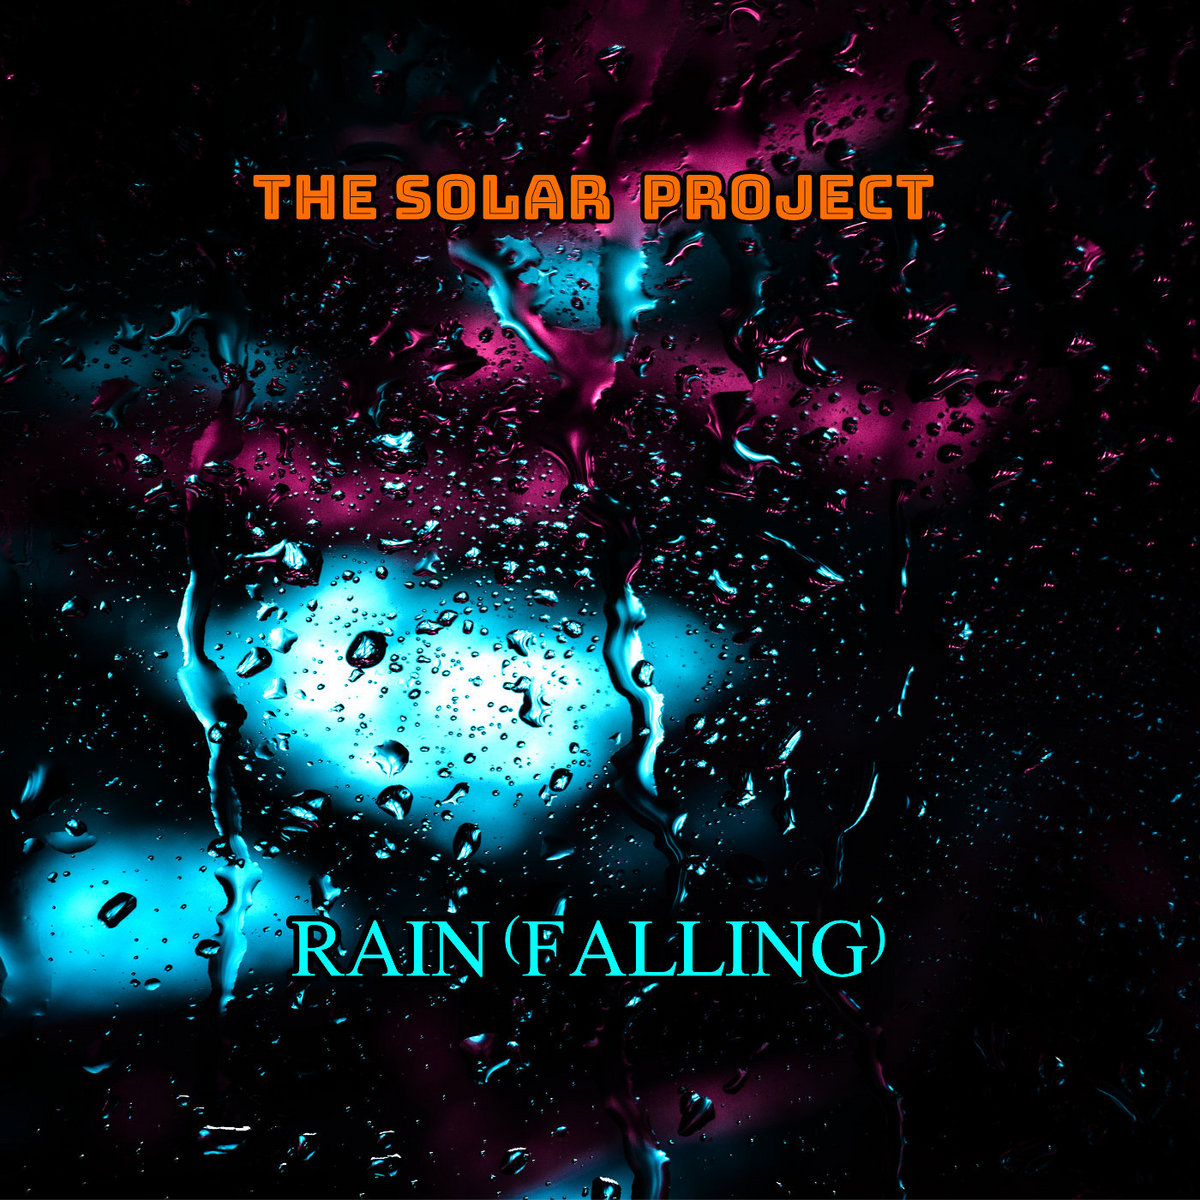 RAIN (Falling) by The Solar Project